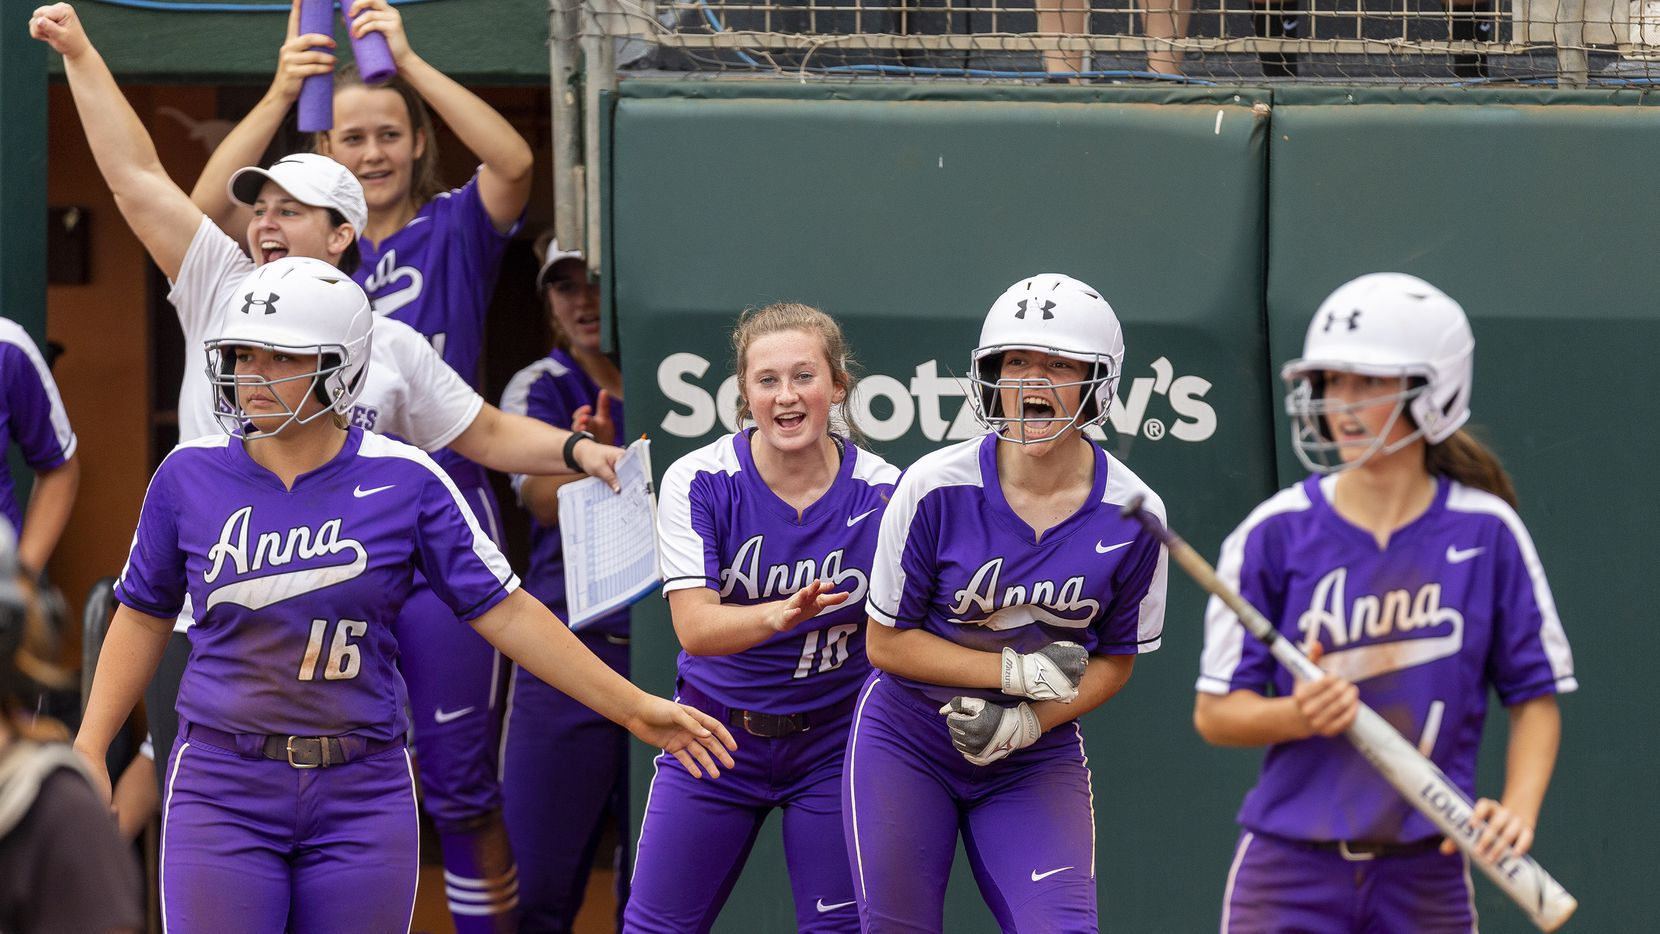 Anna runner Kallie Harris, center, celebrates scoring against Decatur during the UIL Class 4A state softball semifinal in Austin, Thursday, May 30, 2019. (Stephen Spillman/Special Contributor)